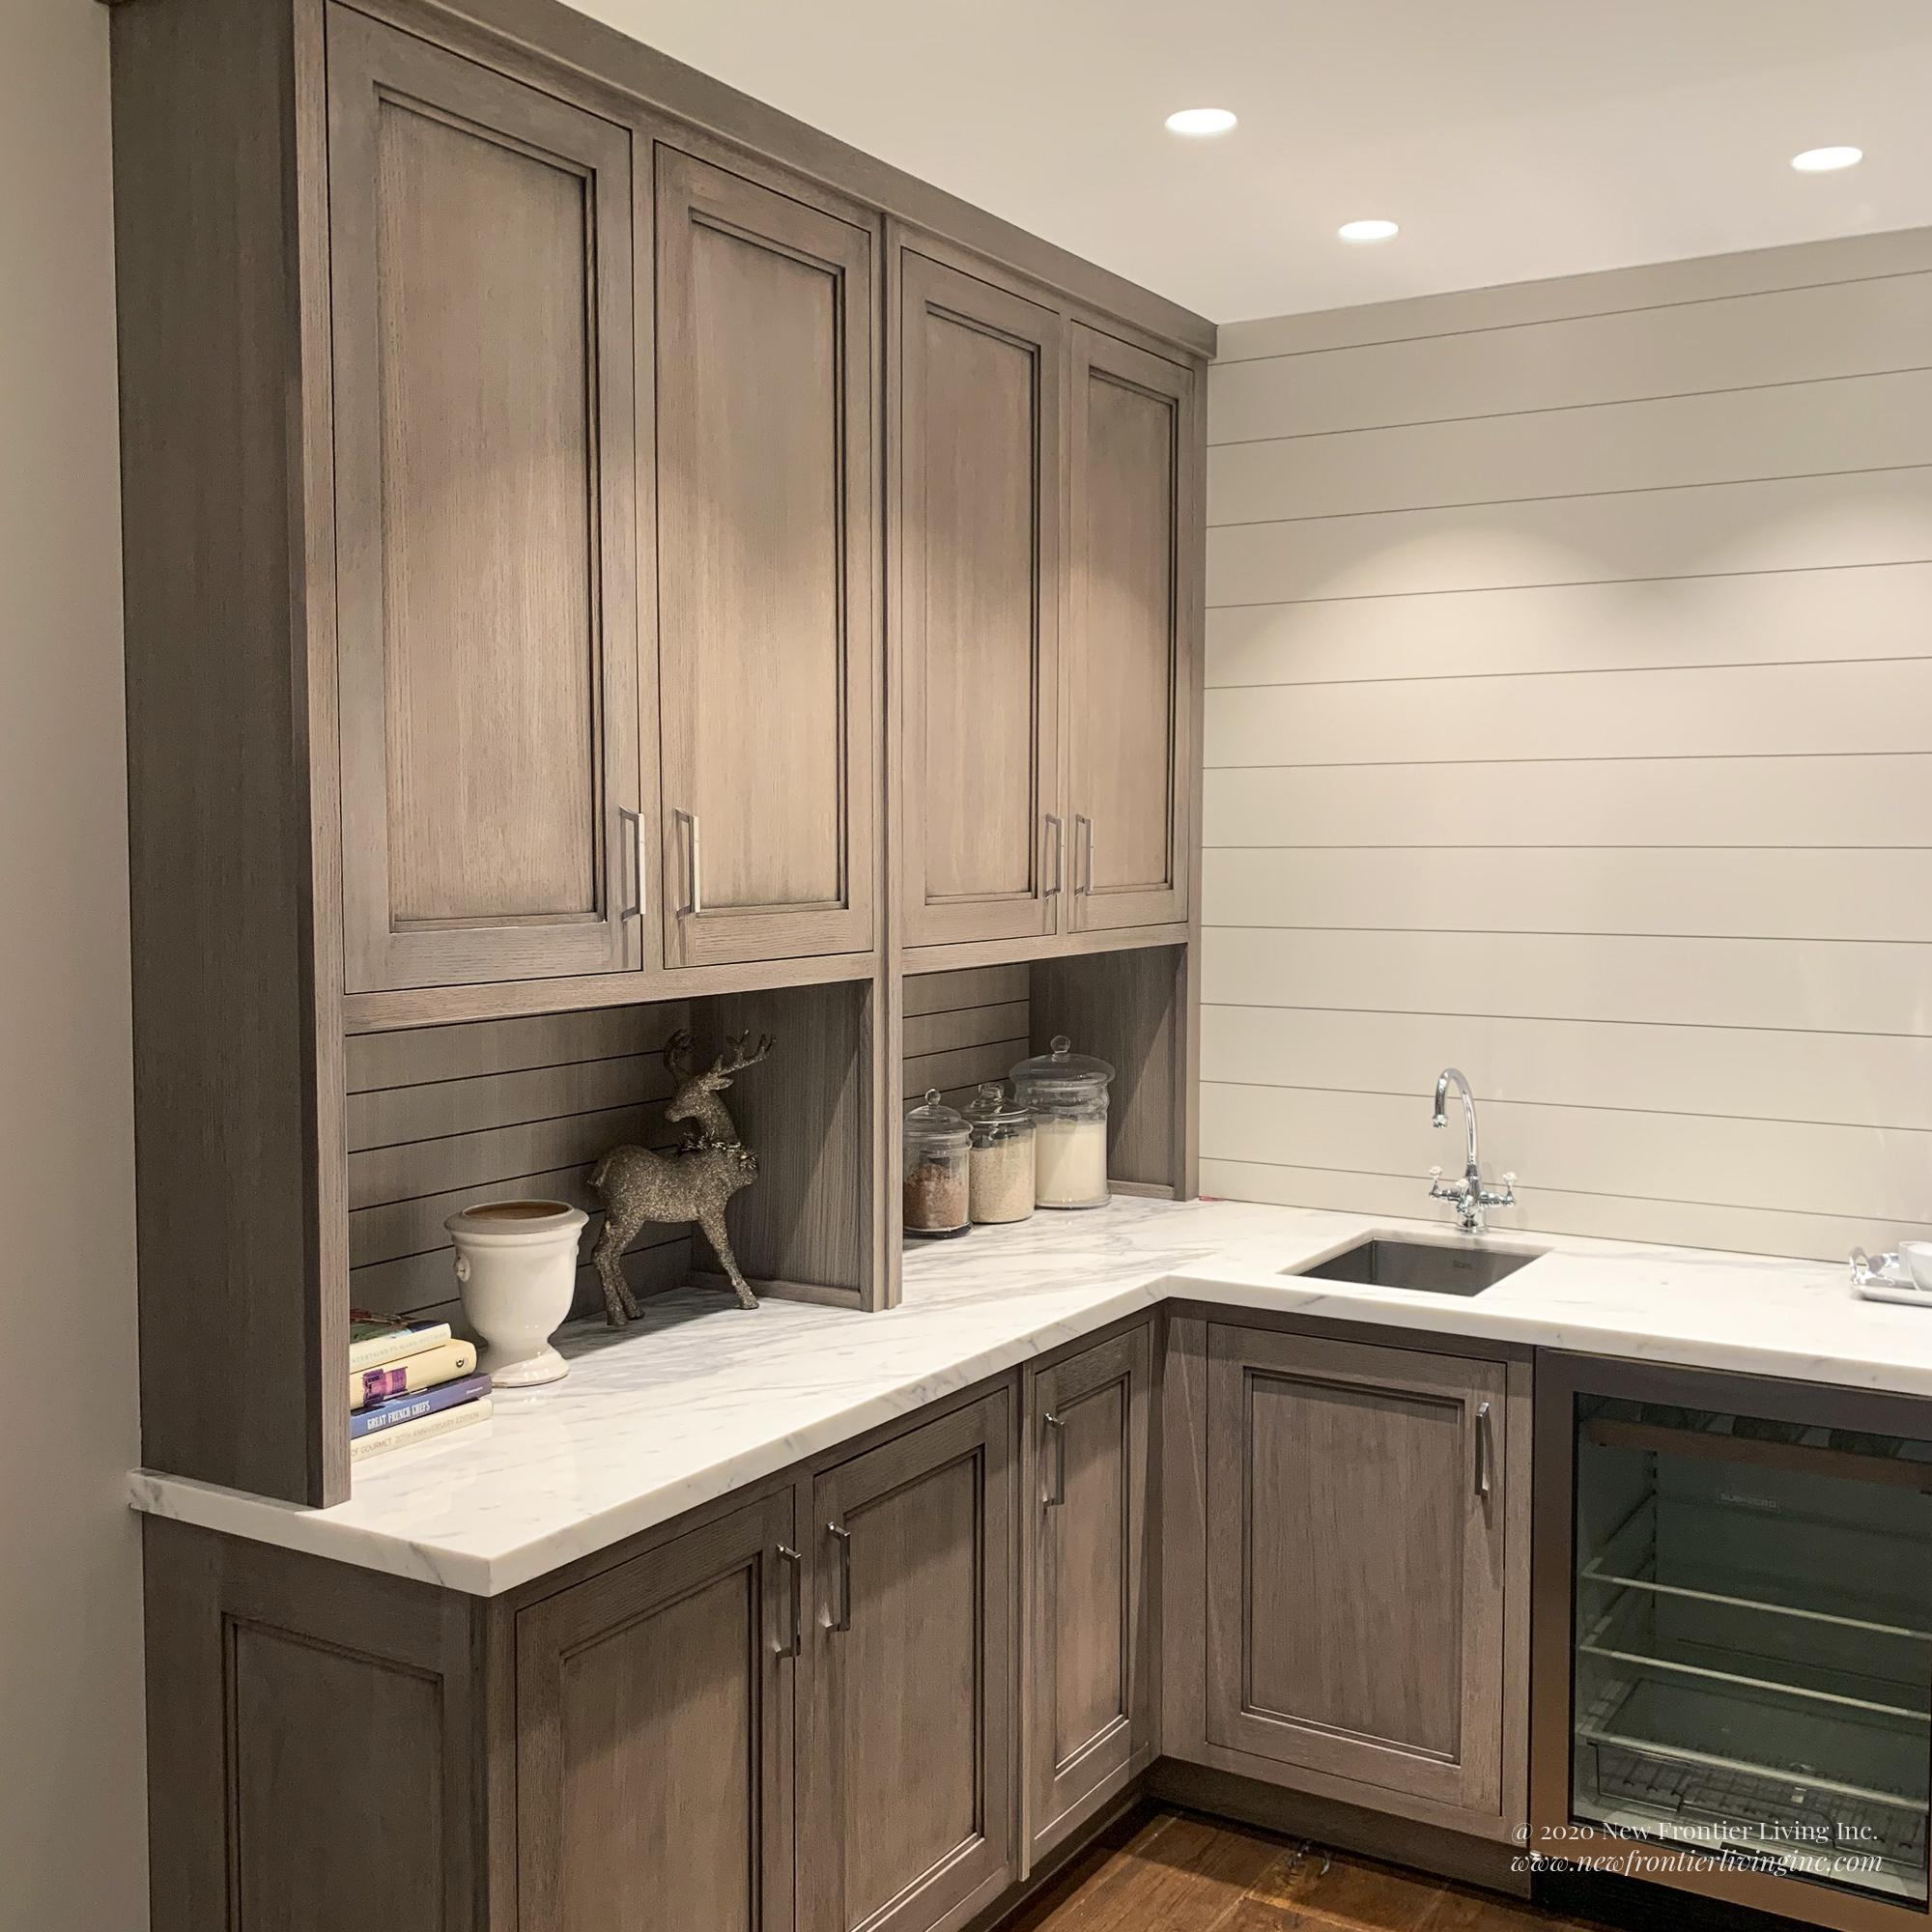 Matte finish traditional peach kitchen cabinetry  with white countertop